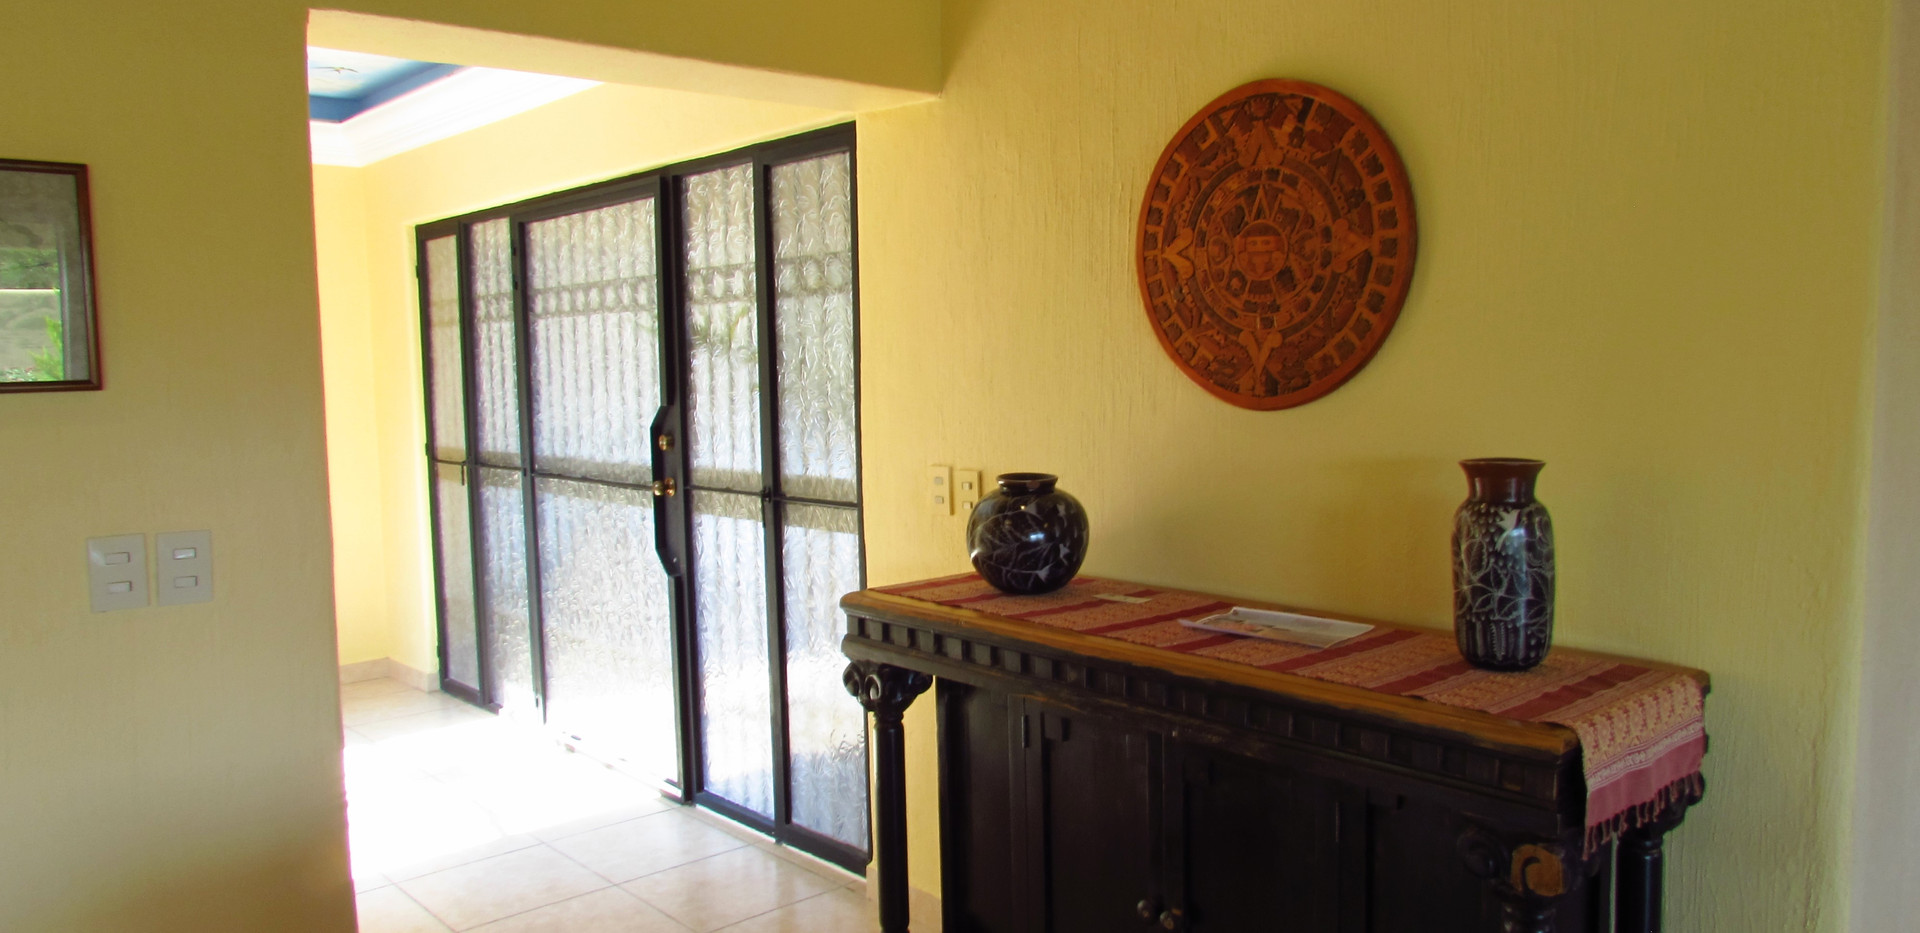 Entrance and 2 bedroom hallway